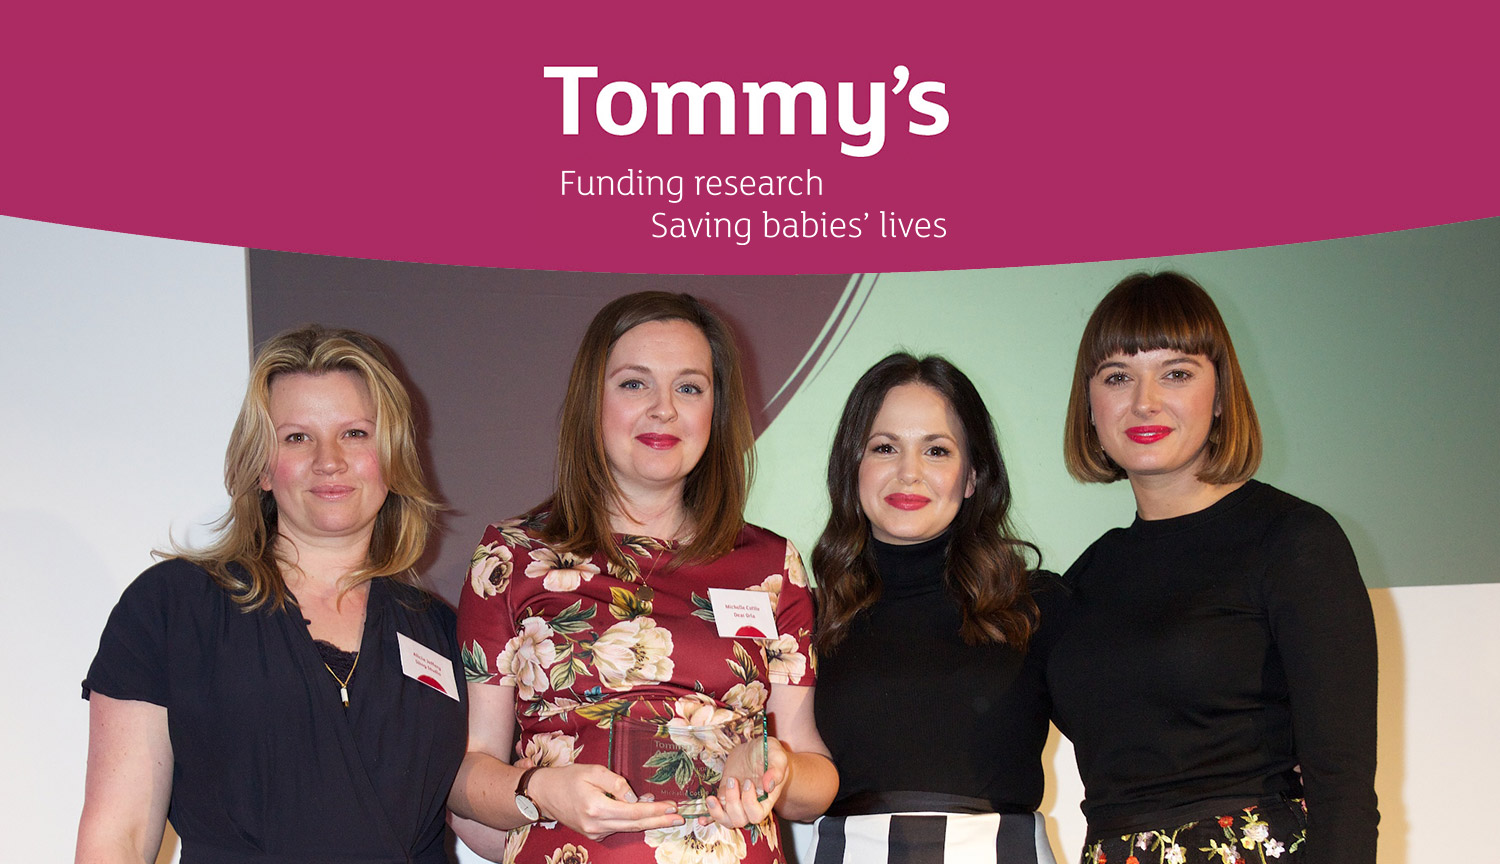 Tommy's Individual Awards 2017-2018